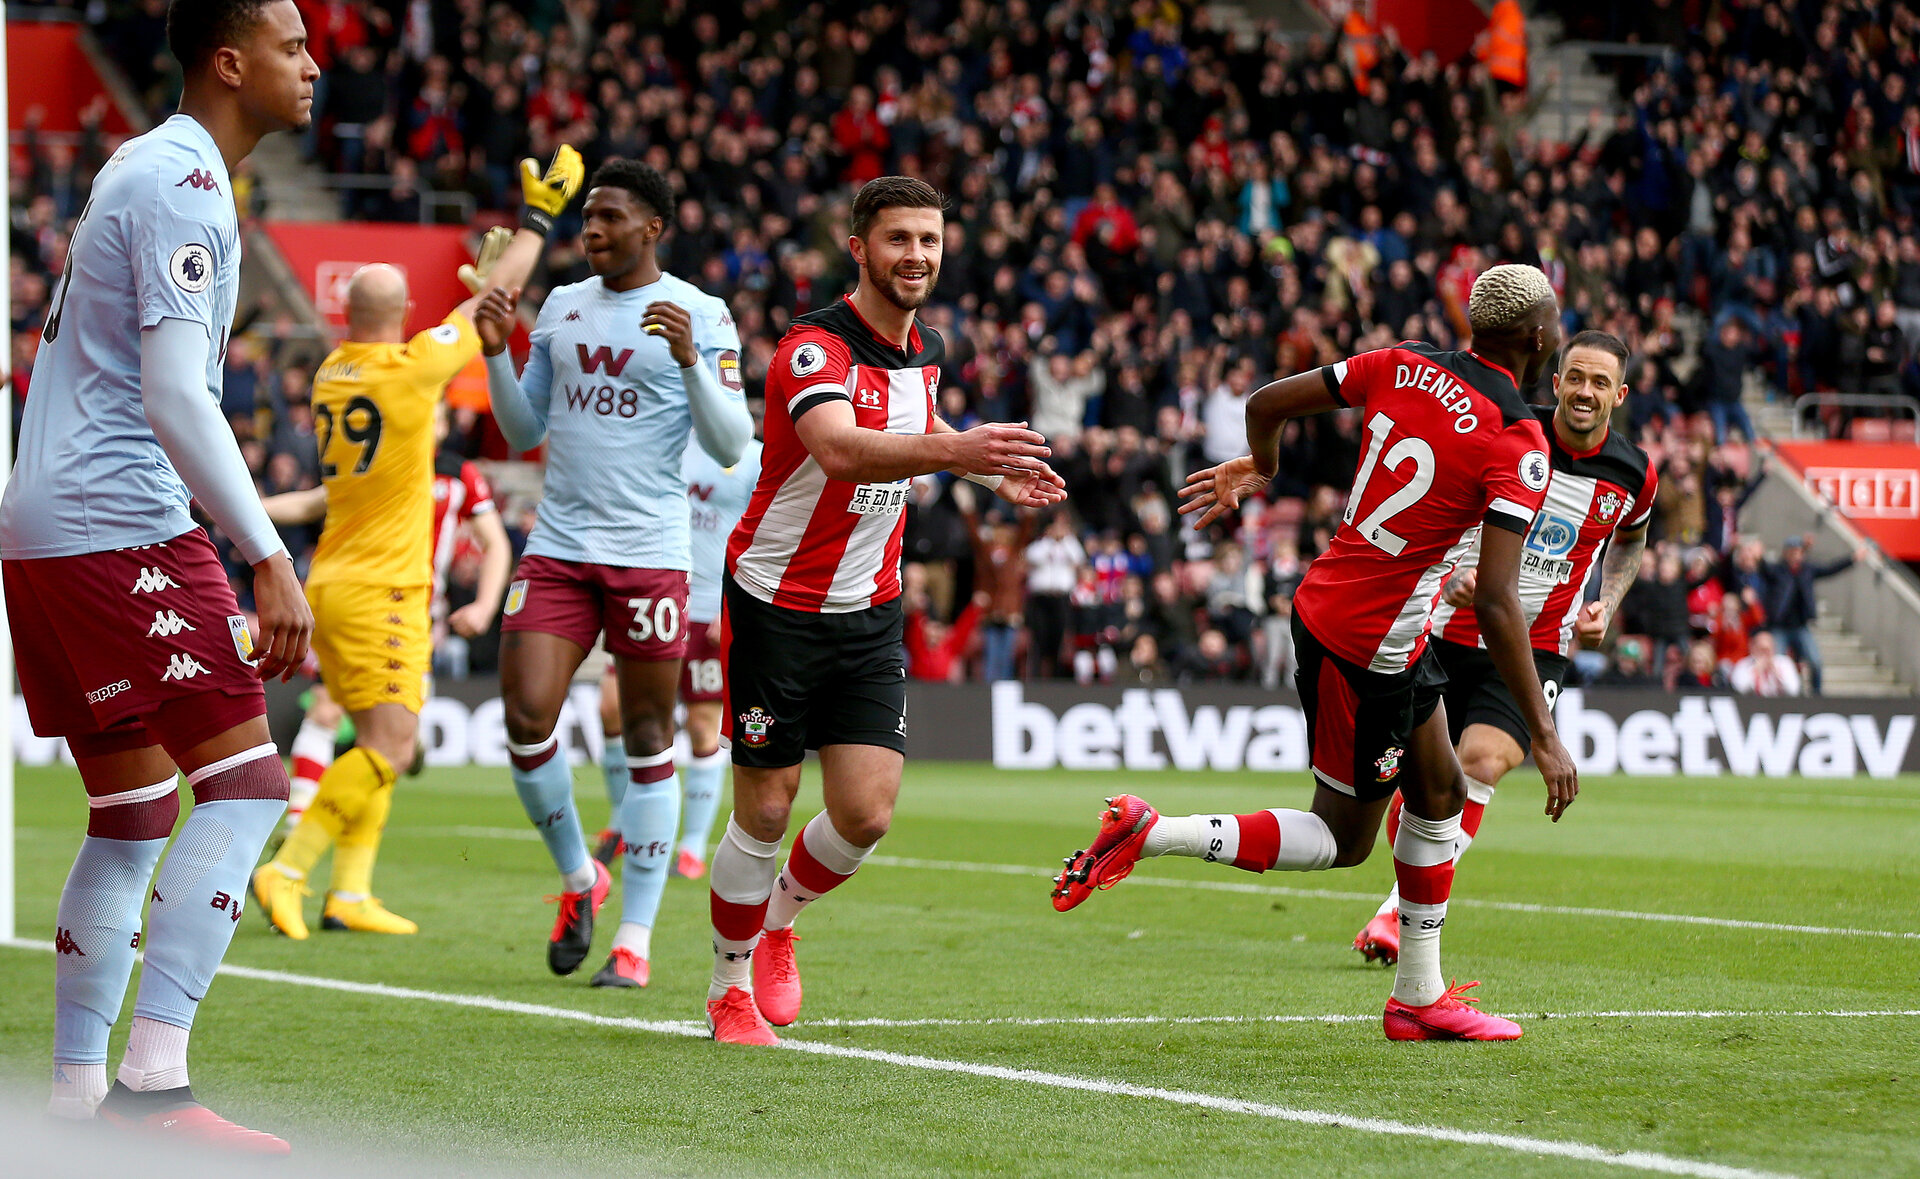 SOUTHAMPTON, ENGLAND - FEBRUARY 22: Shane Long of Southampton celebrates after opening the scoring during the Premier League match between Southampton FC and Aston Villa at St Mary's Stadium on February 22, 2020 in Southampton, United Kingdom. (Photo by Matt Watson/Southampton FC via Getty Images)